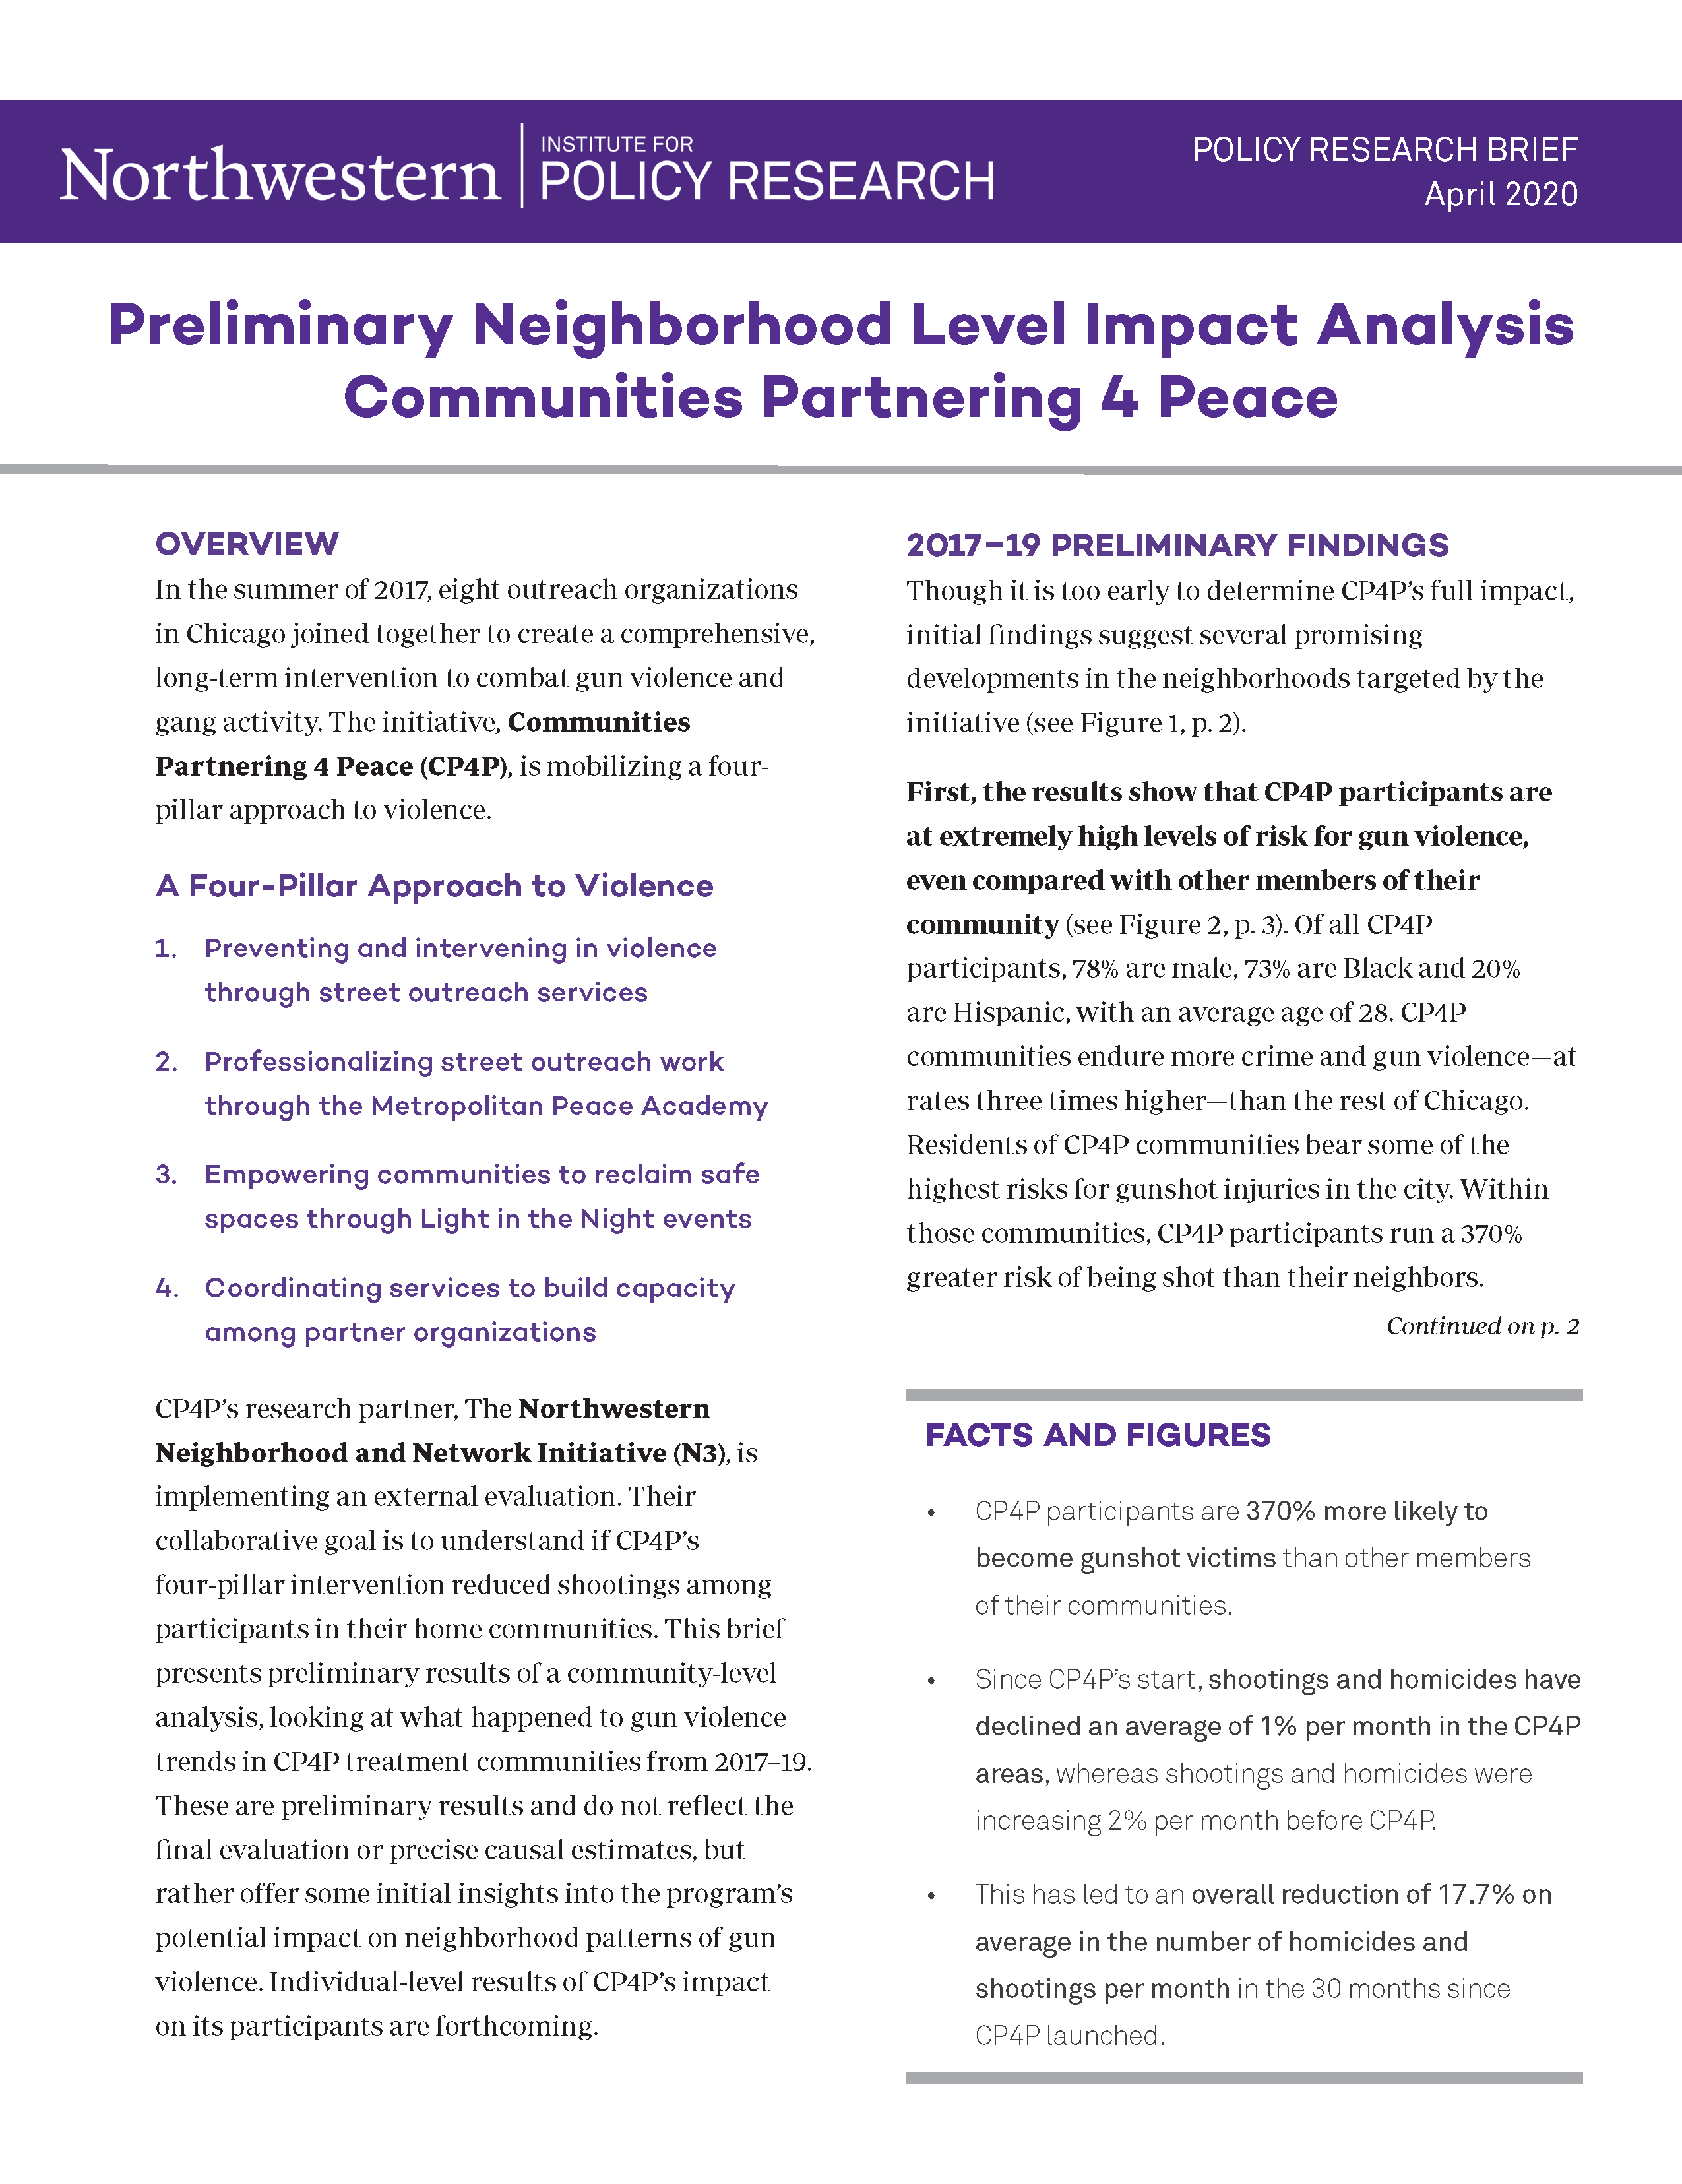 Preliminary Neighborhood Level Impact Analysis Communities Partnering 4 Peace